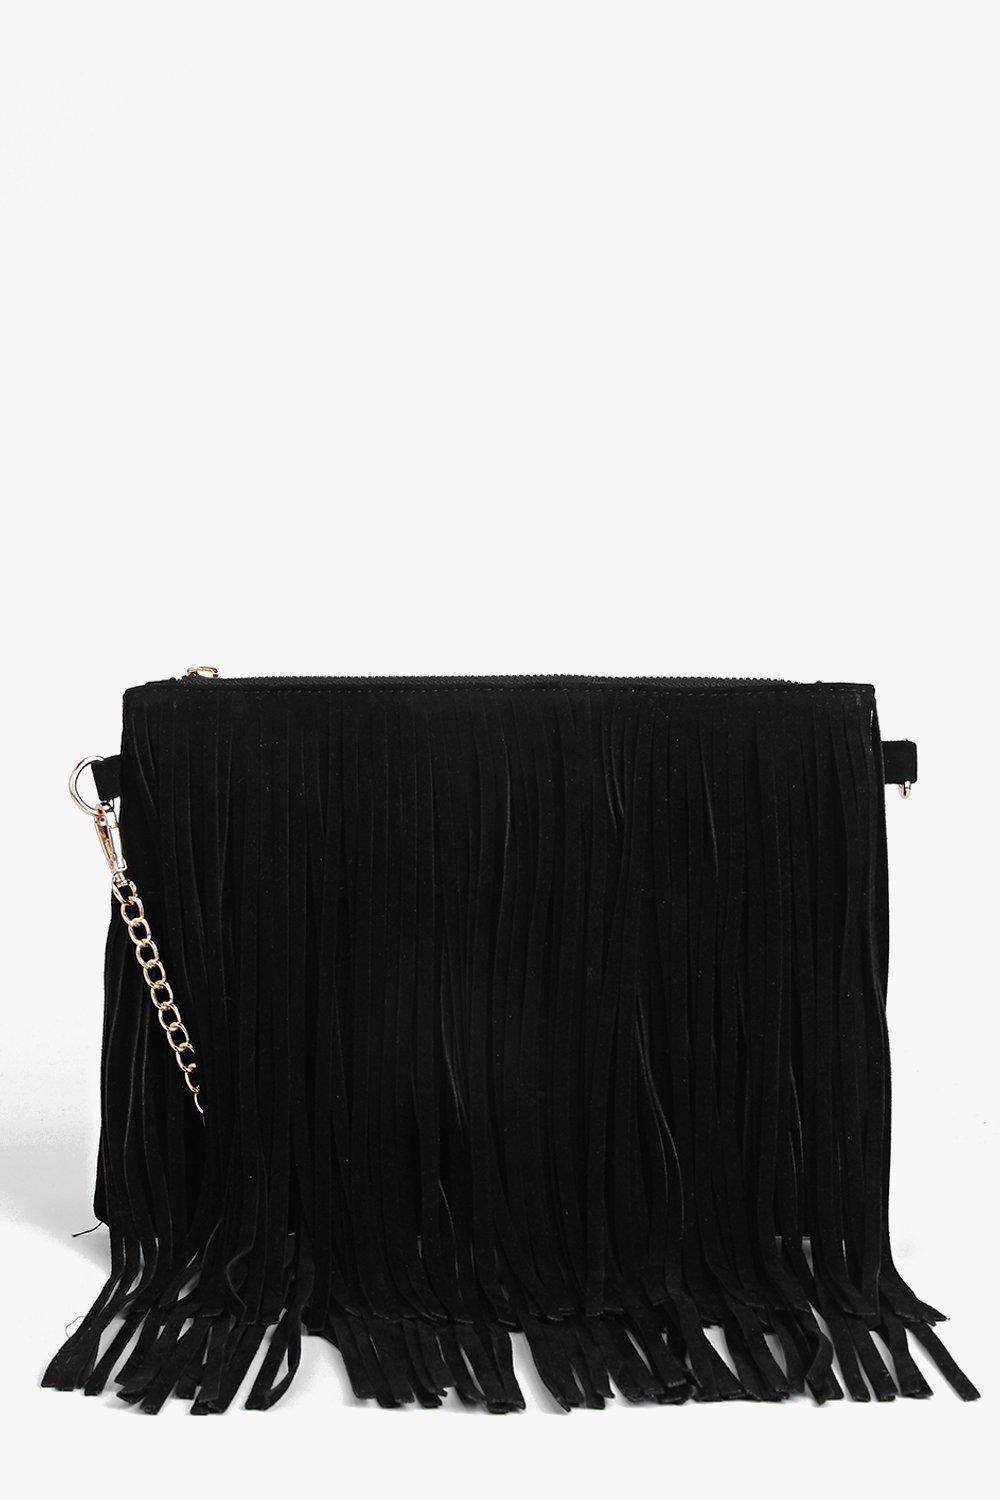 Fringed Loop Chain Strap Cross Body Bag - black -